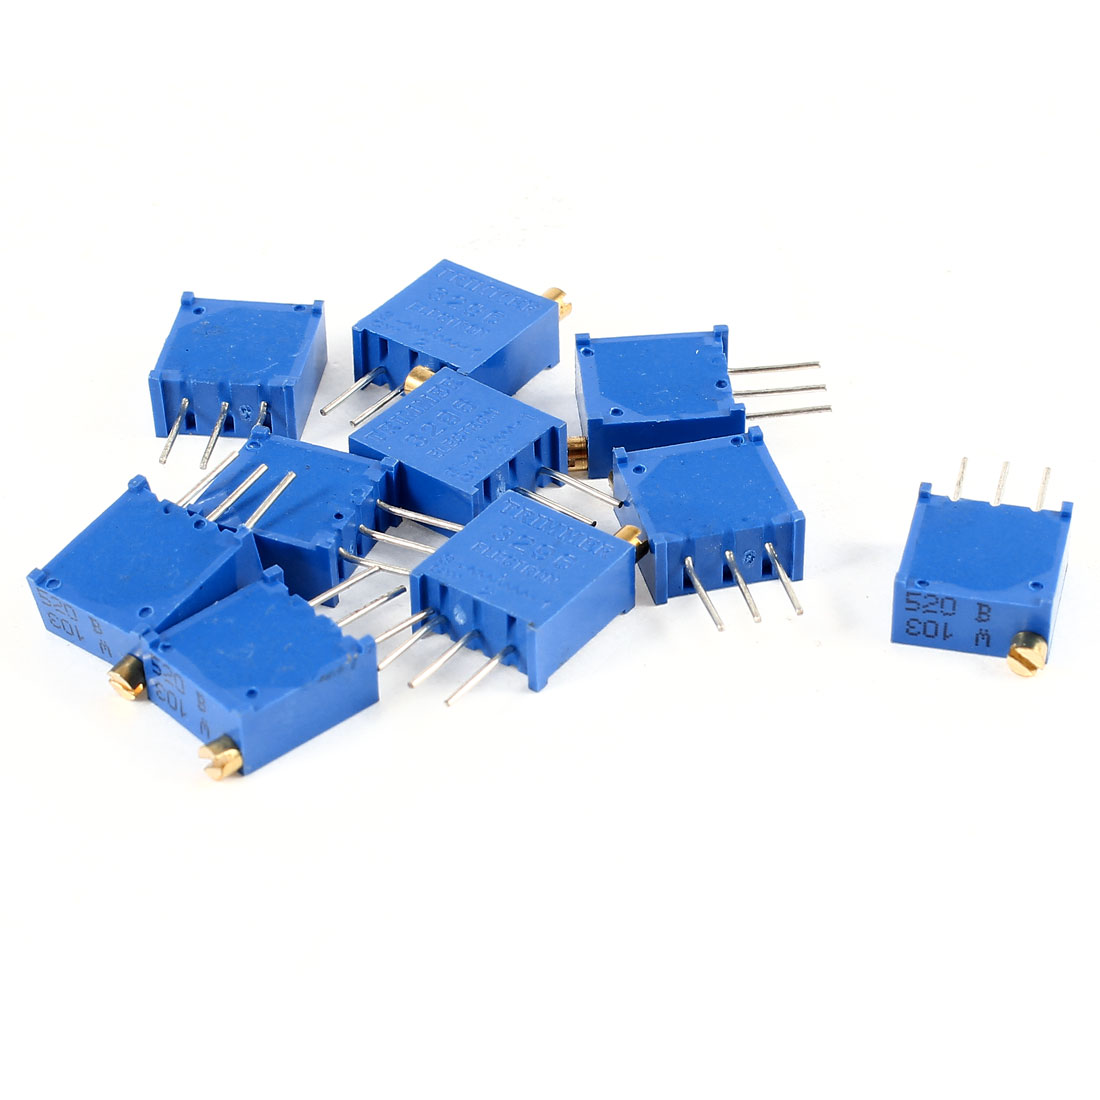 10Pcs 3296W-103 10K ohm 3 Pins High Precision Adjustable Resistor Trim Pot Potentiometer Trimmer